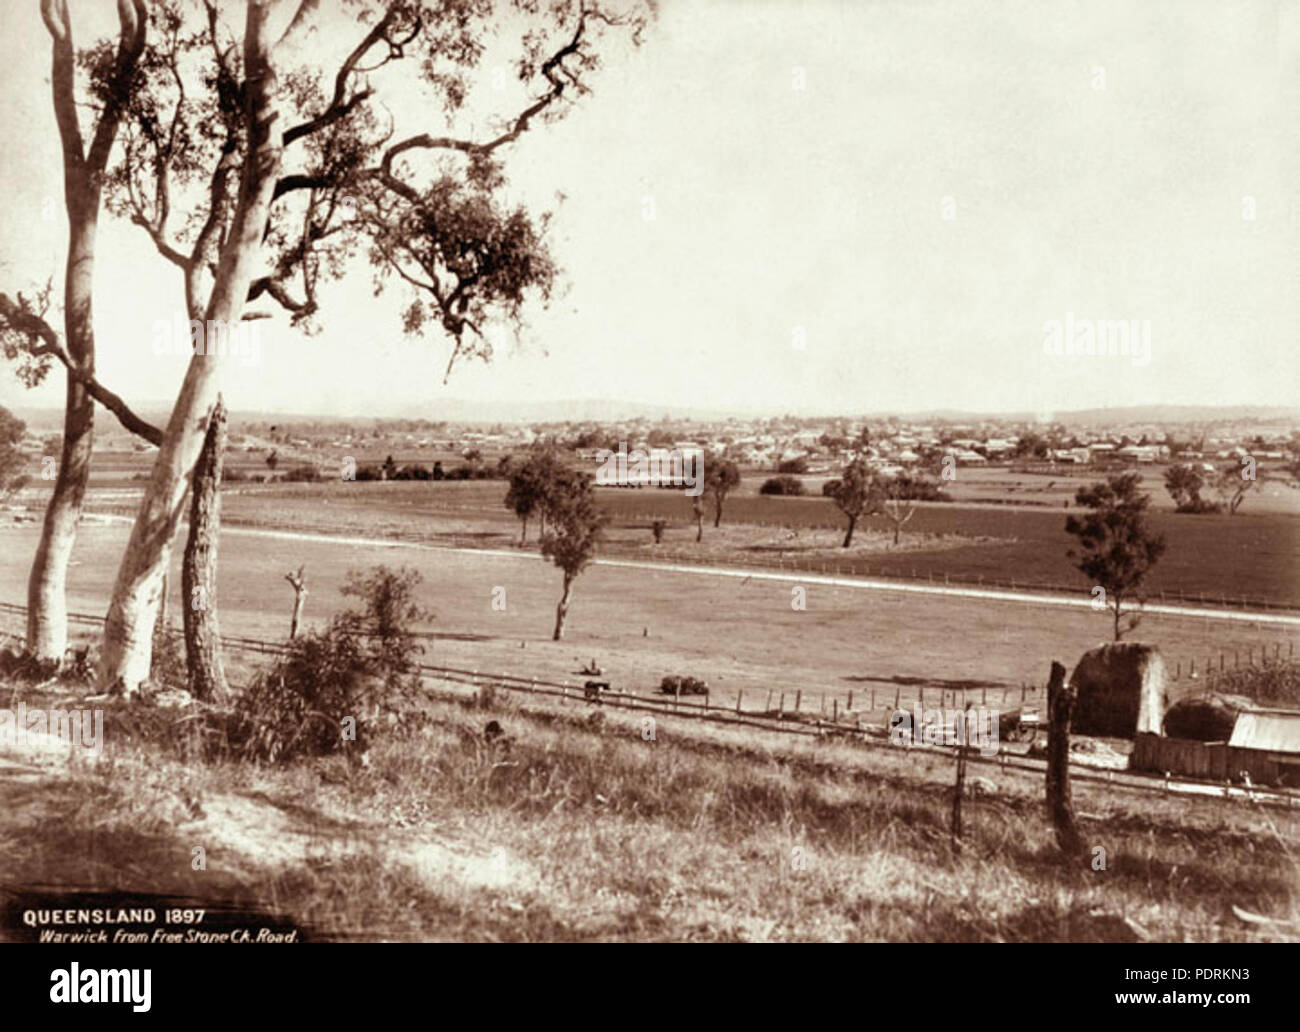 106 Queensland State Archives 2331 View of Warwick from Freestone Creek  Road 1897